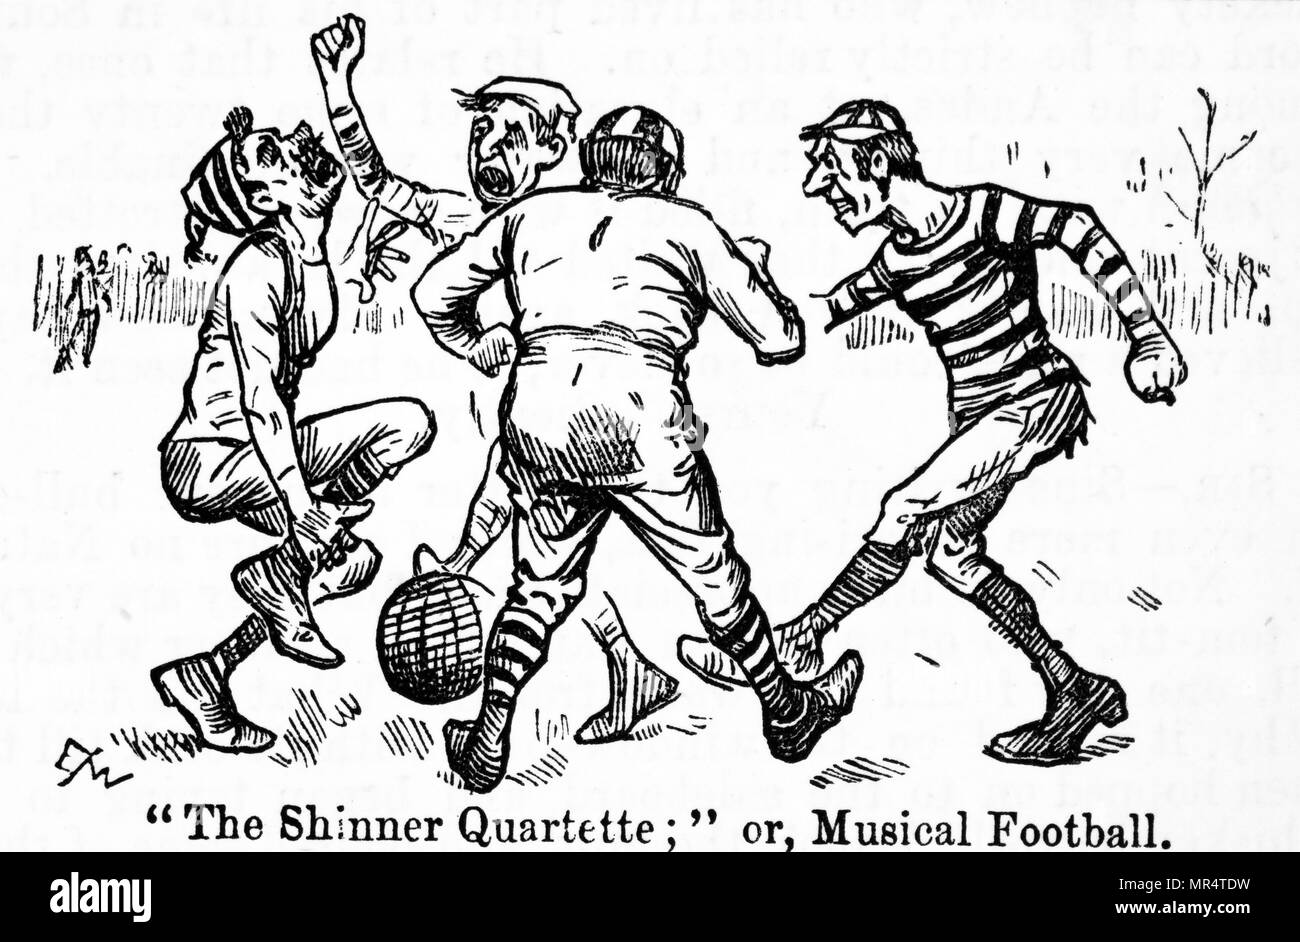 Cartoon depicting a football match between amateurs. Dated 19th century - Stock Image